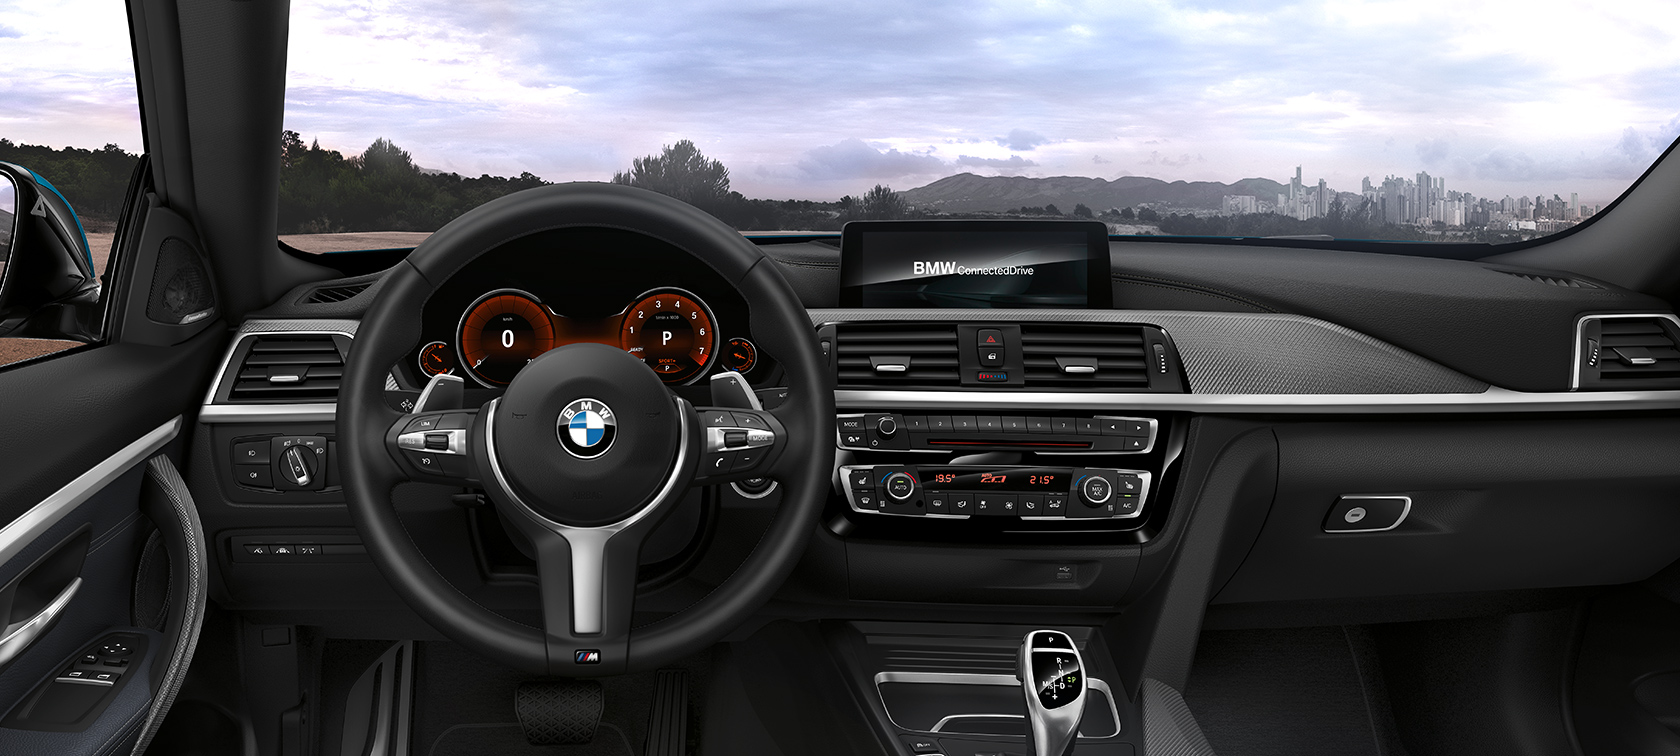 BMW 4-Series Coupe black inside: far away city view